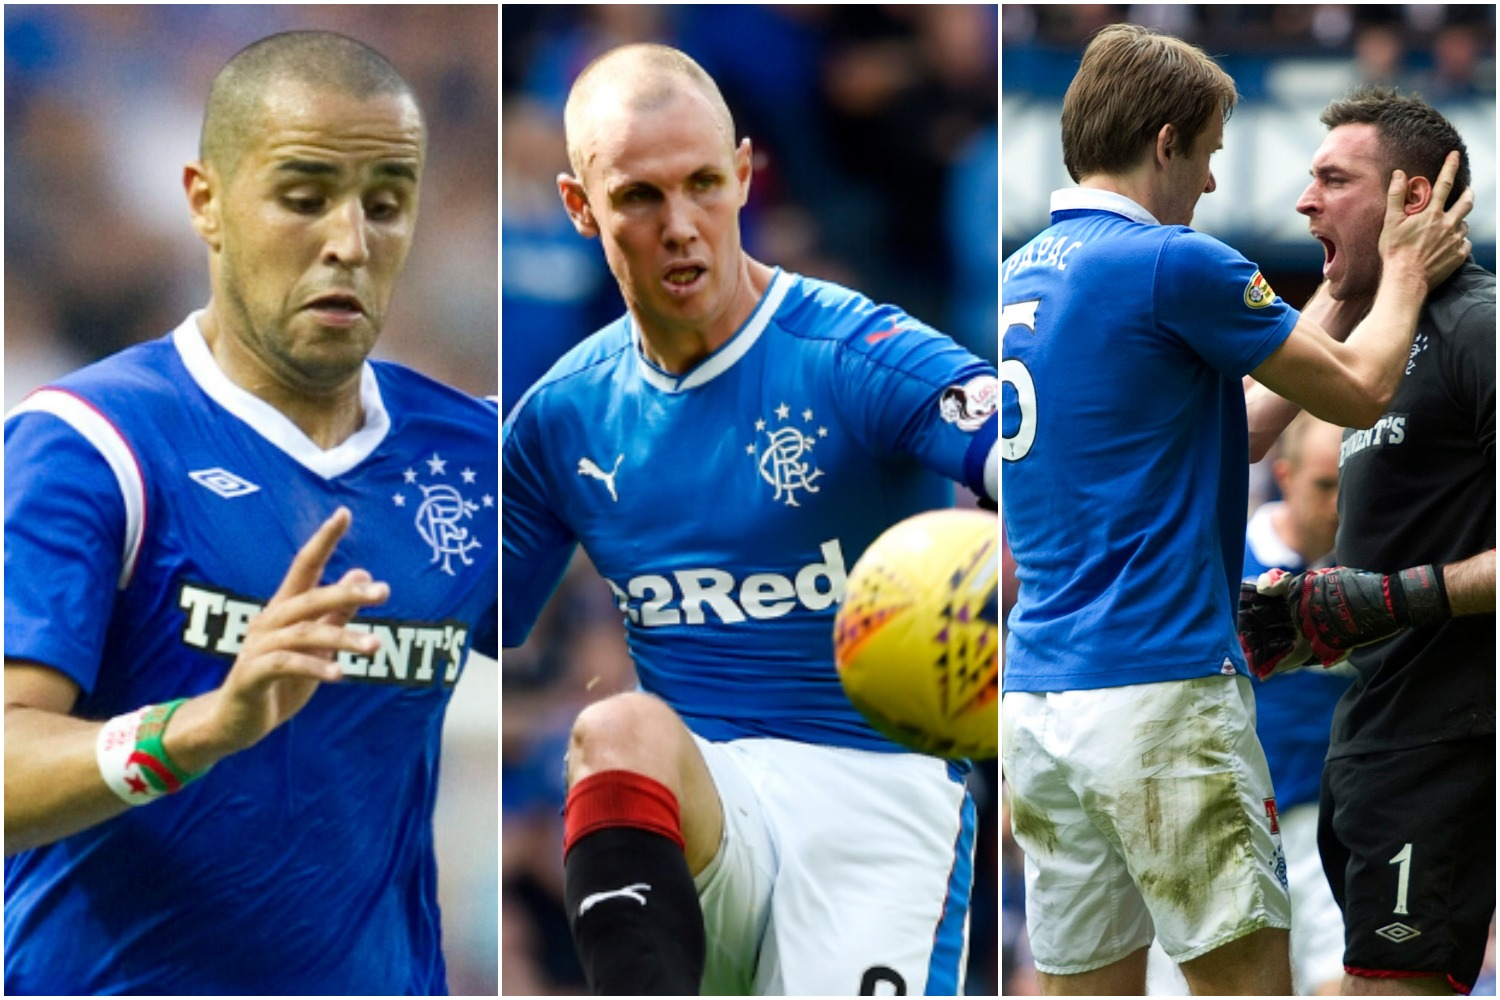 Rangers Team of the Decade: Pick your favourite XI from Gers stars from past 10 years